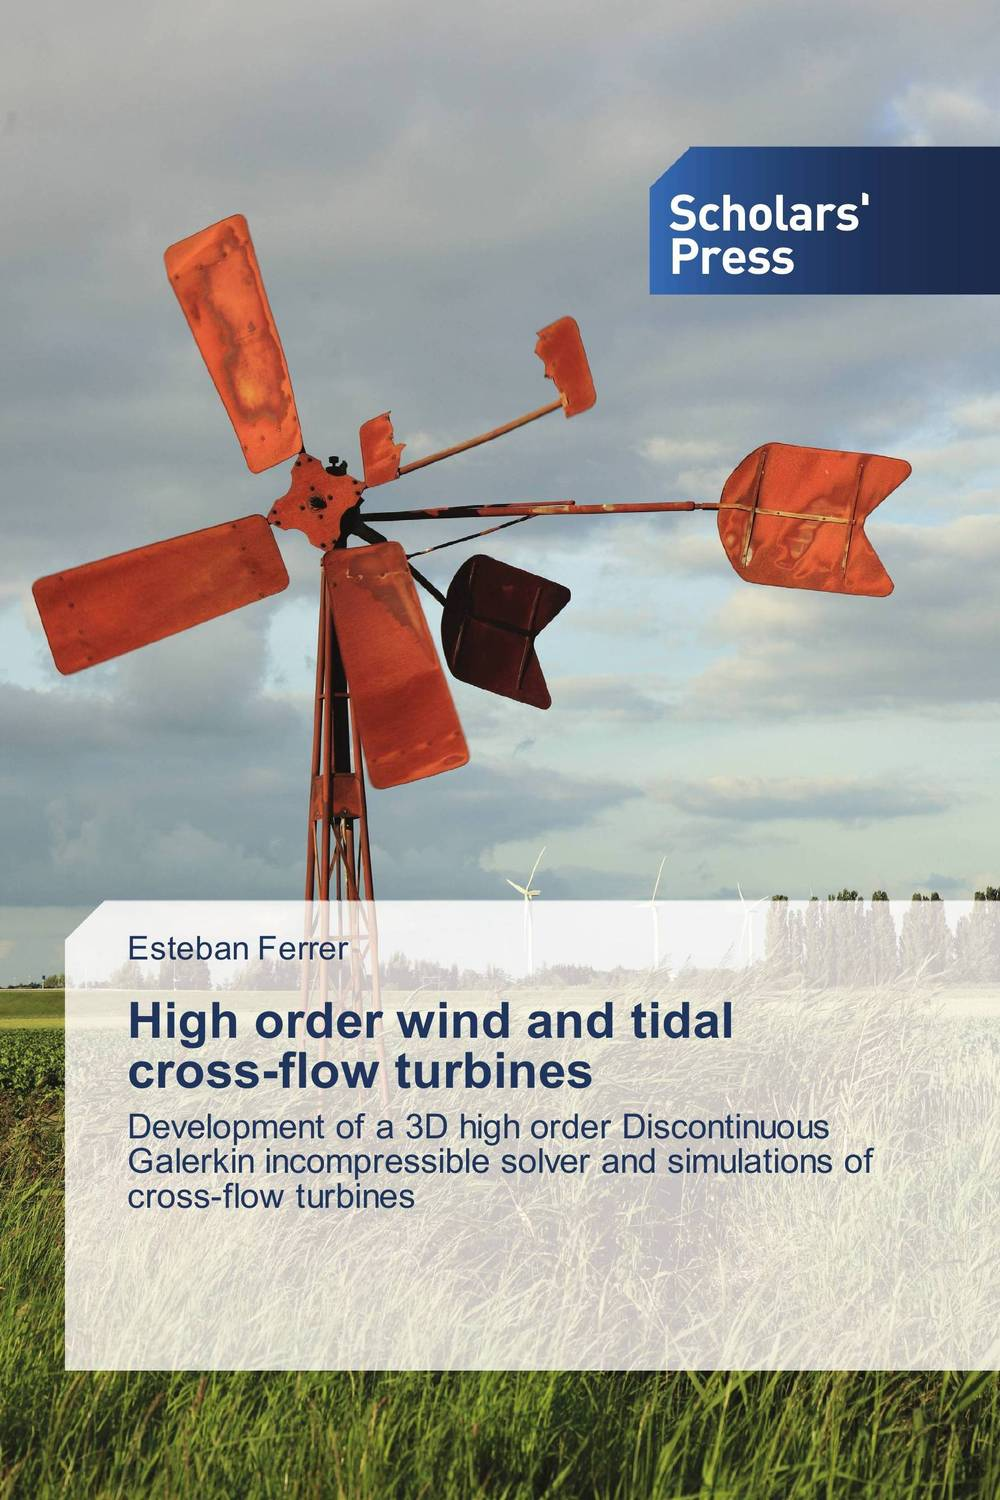 High order wind and tidal cross-flow turbines fiber motion in turbulent flow